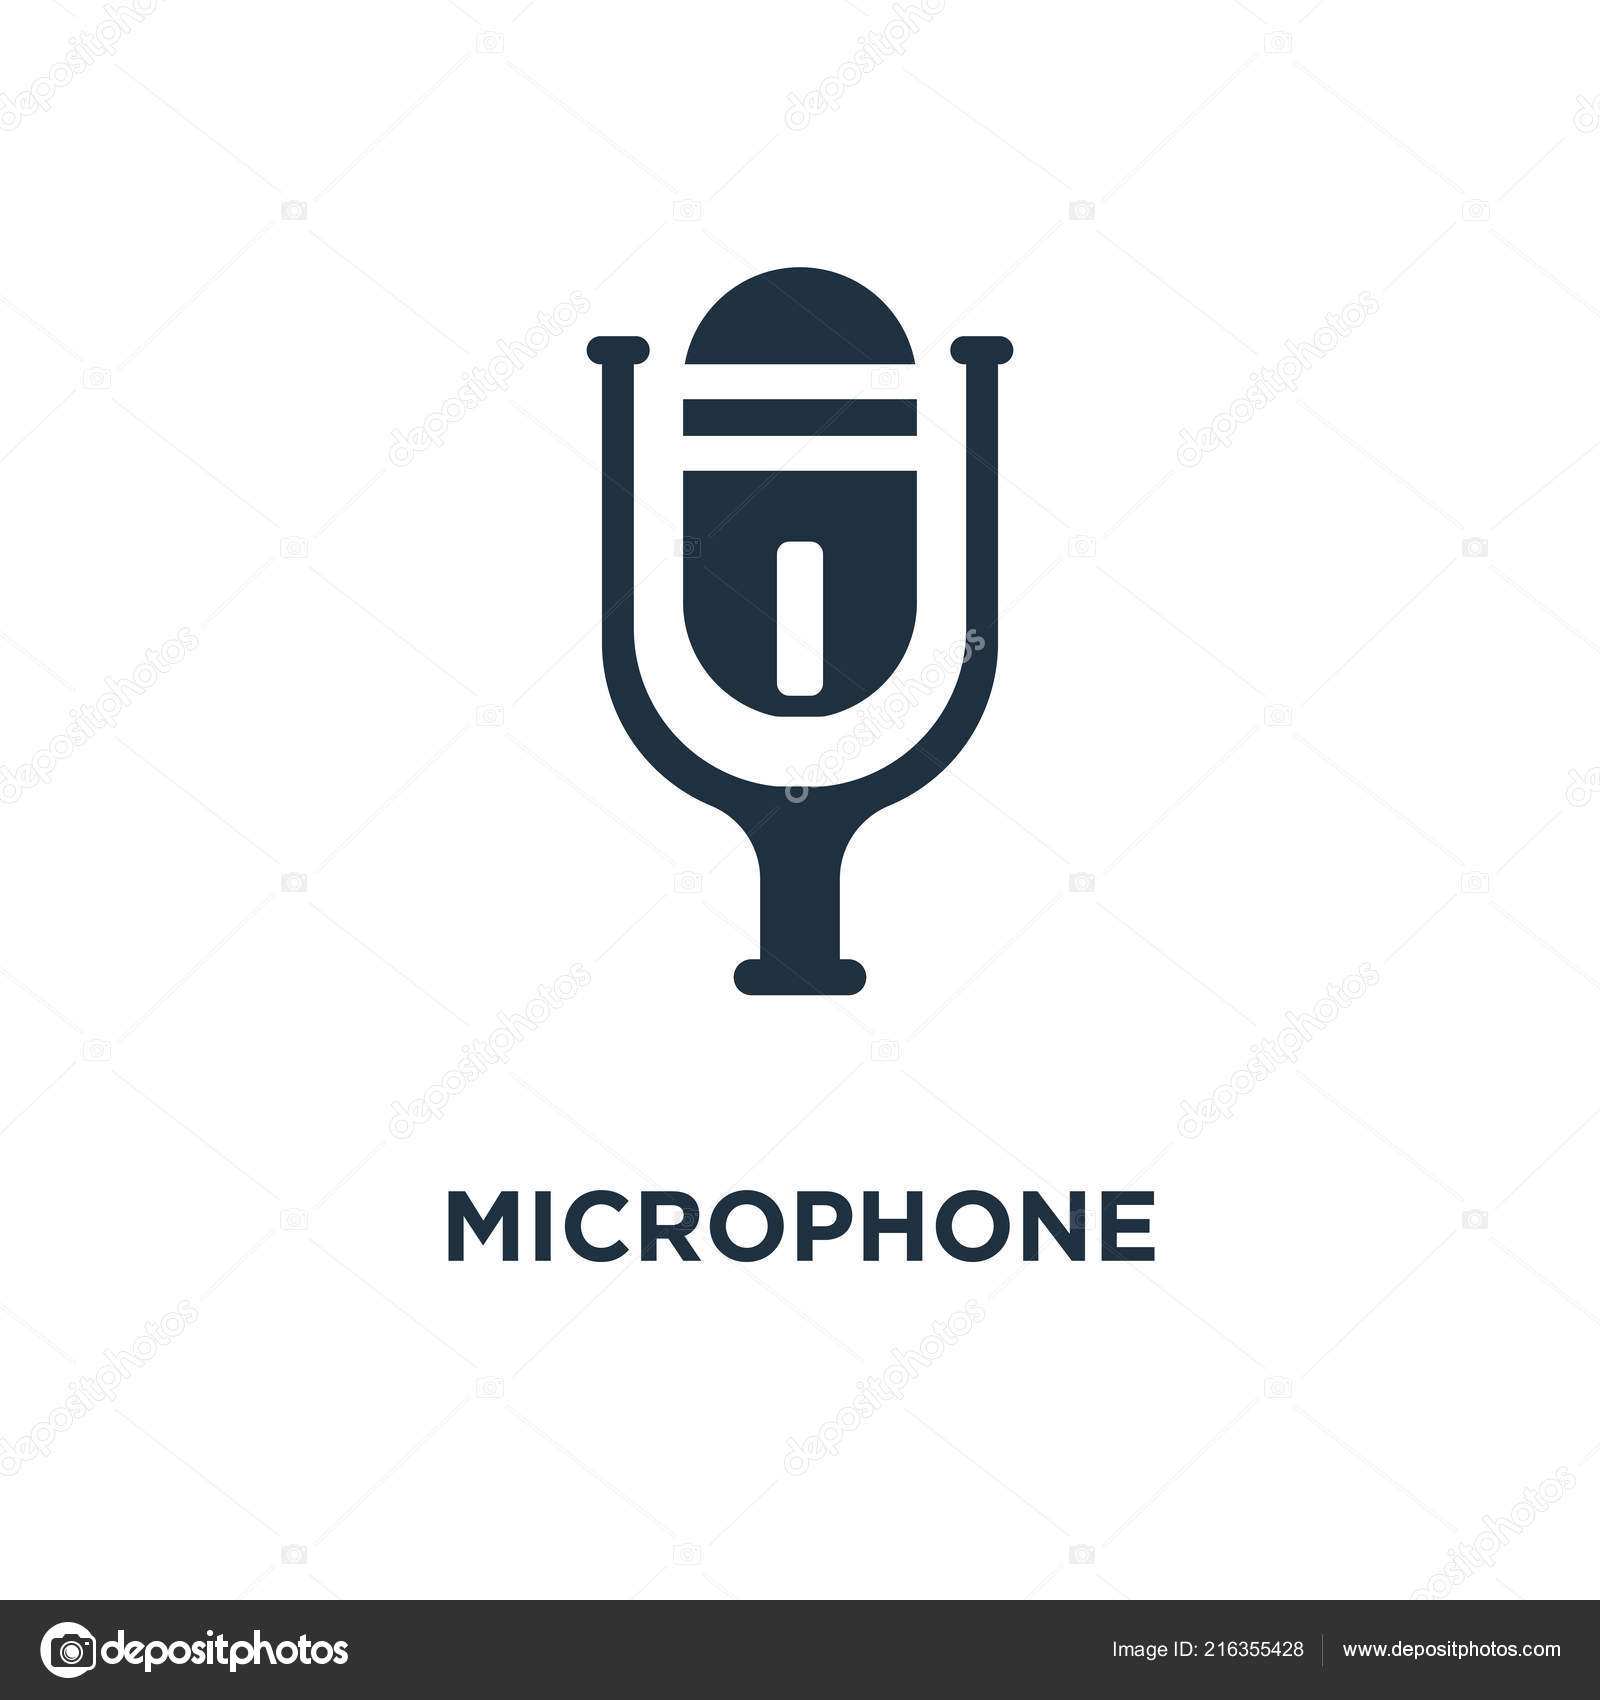 Microphone Icon Black Filled Vector Illustration Microphone Symbol